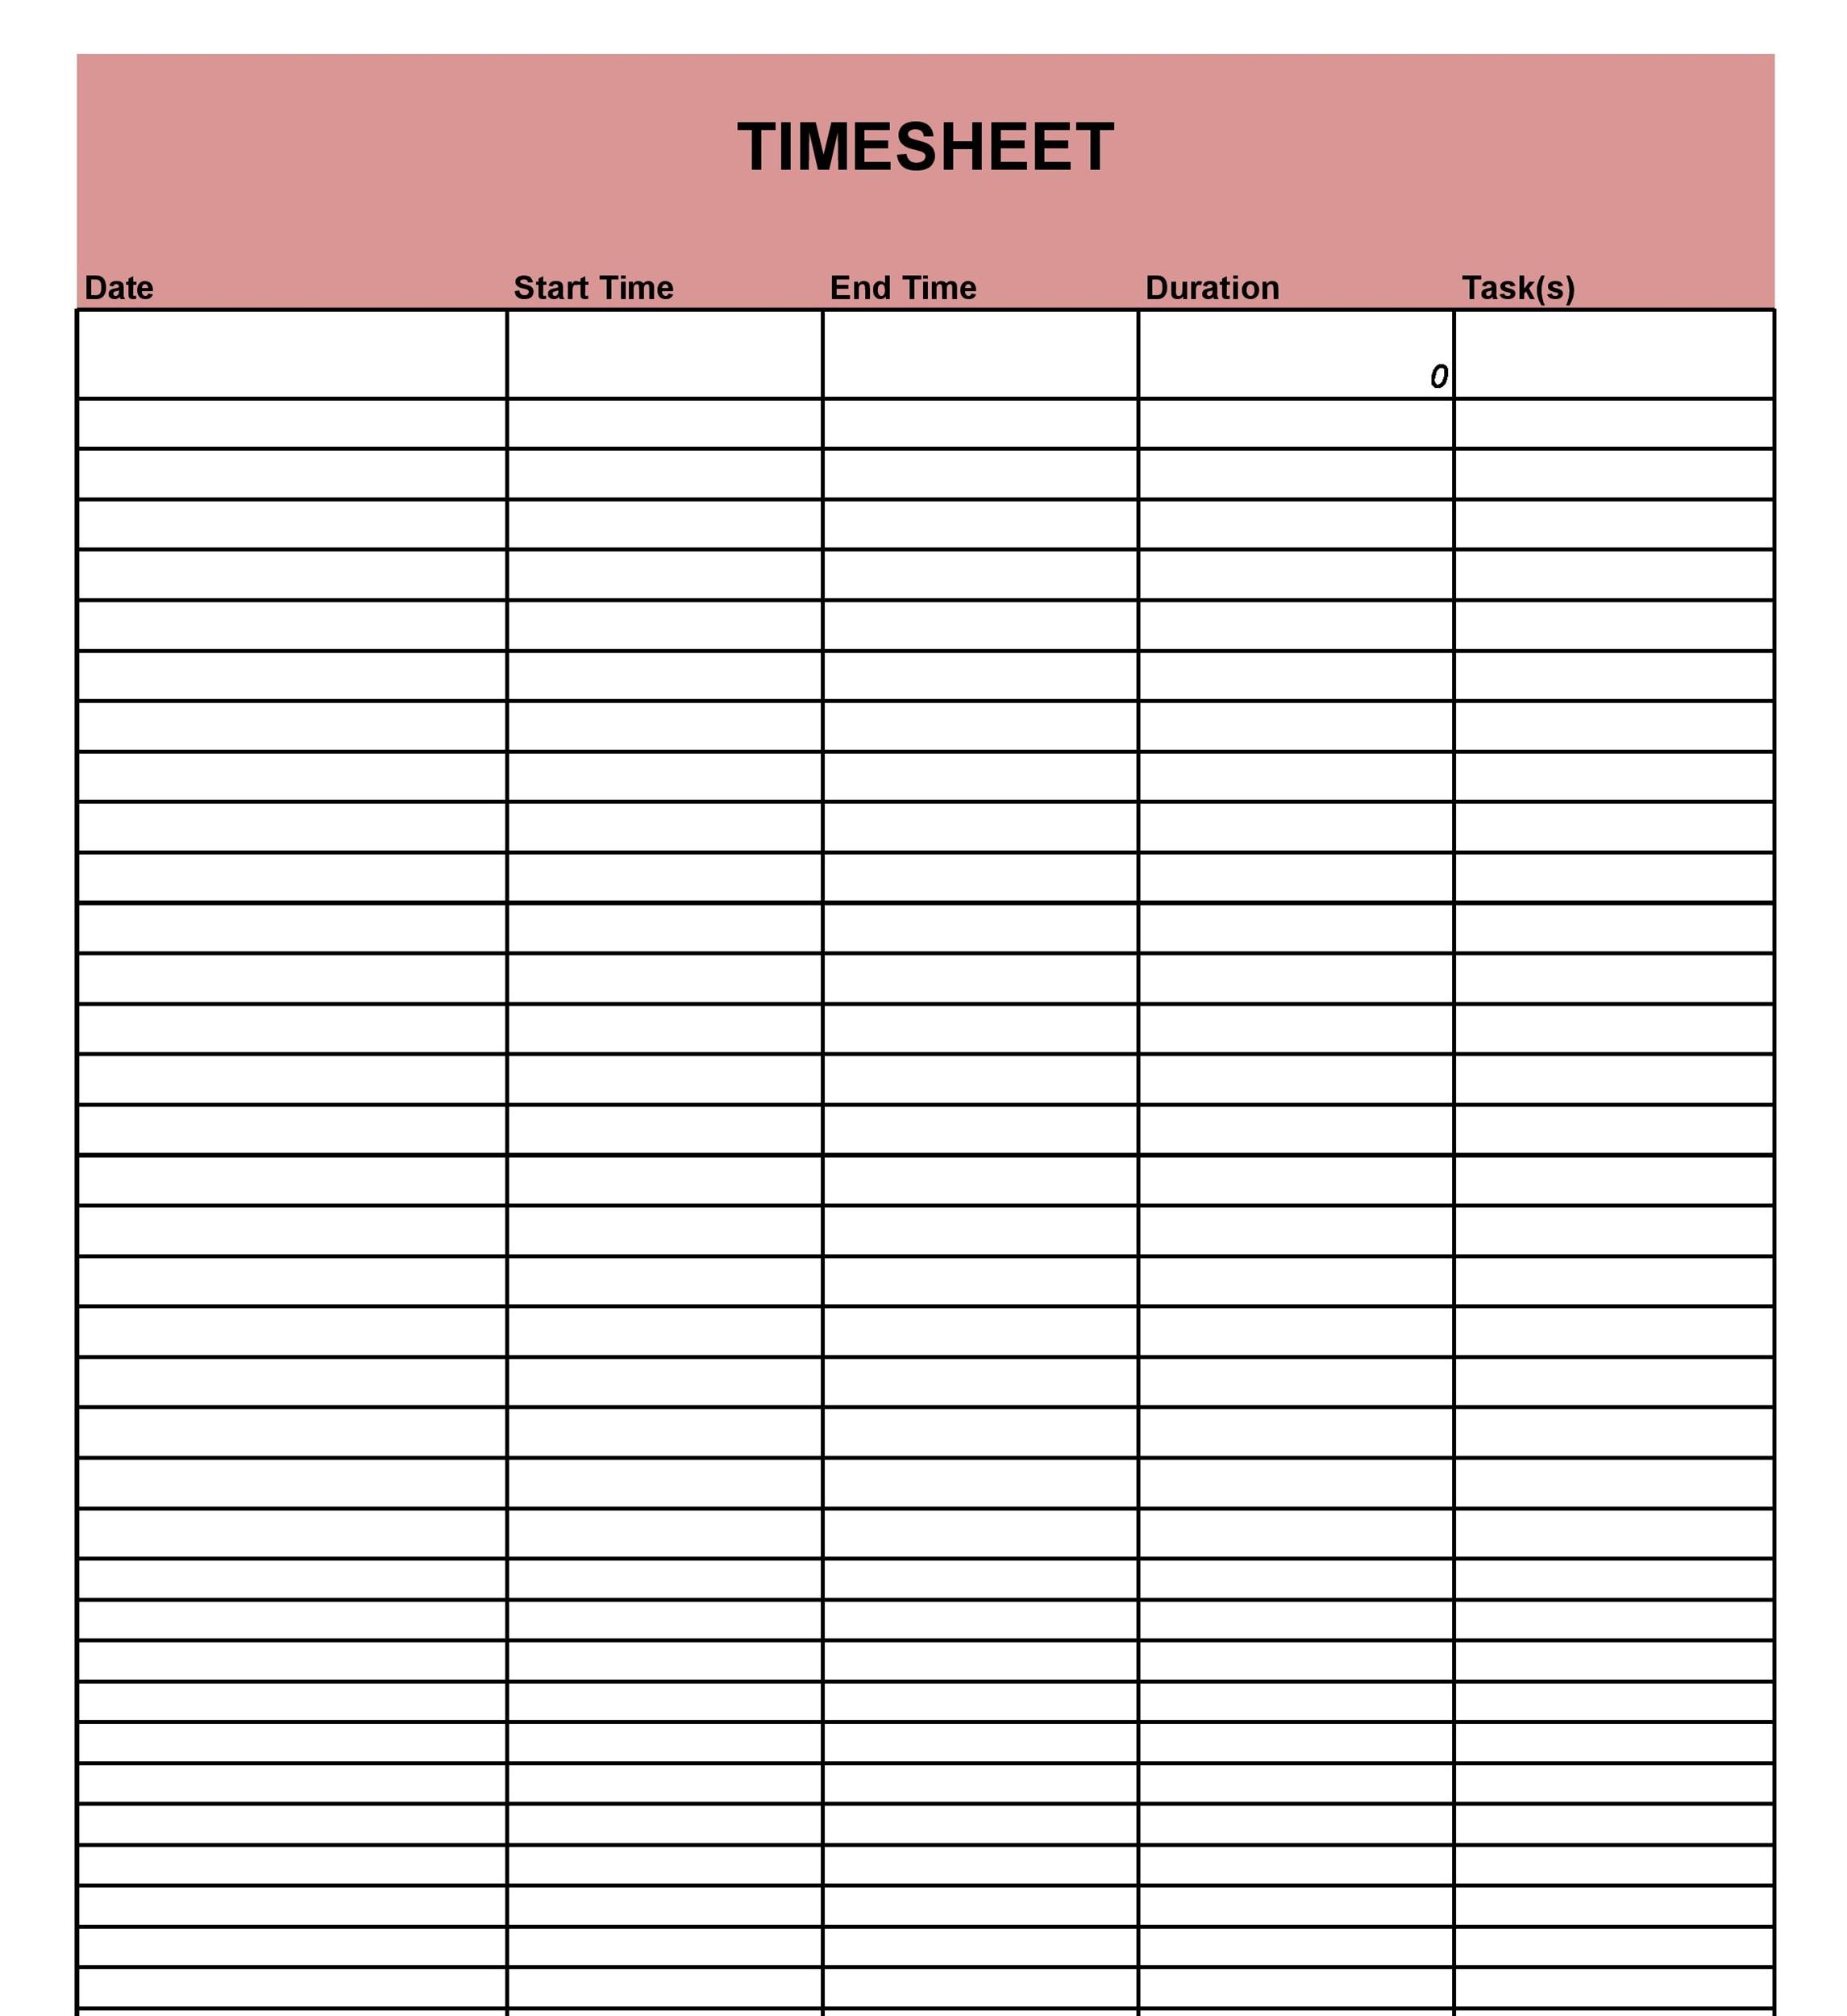 40 Free Timesheet / Time Card Templates ᐅ Template Lab